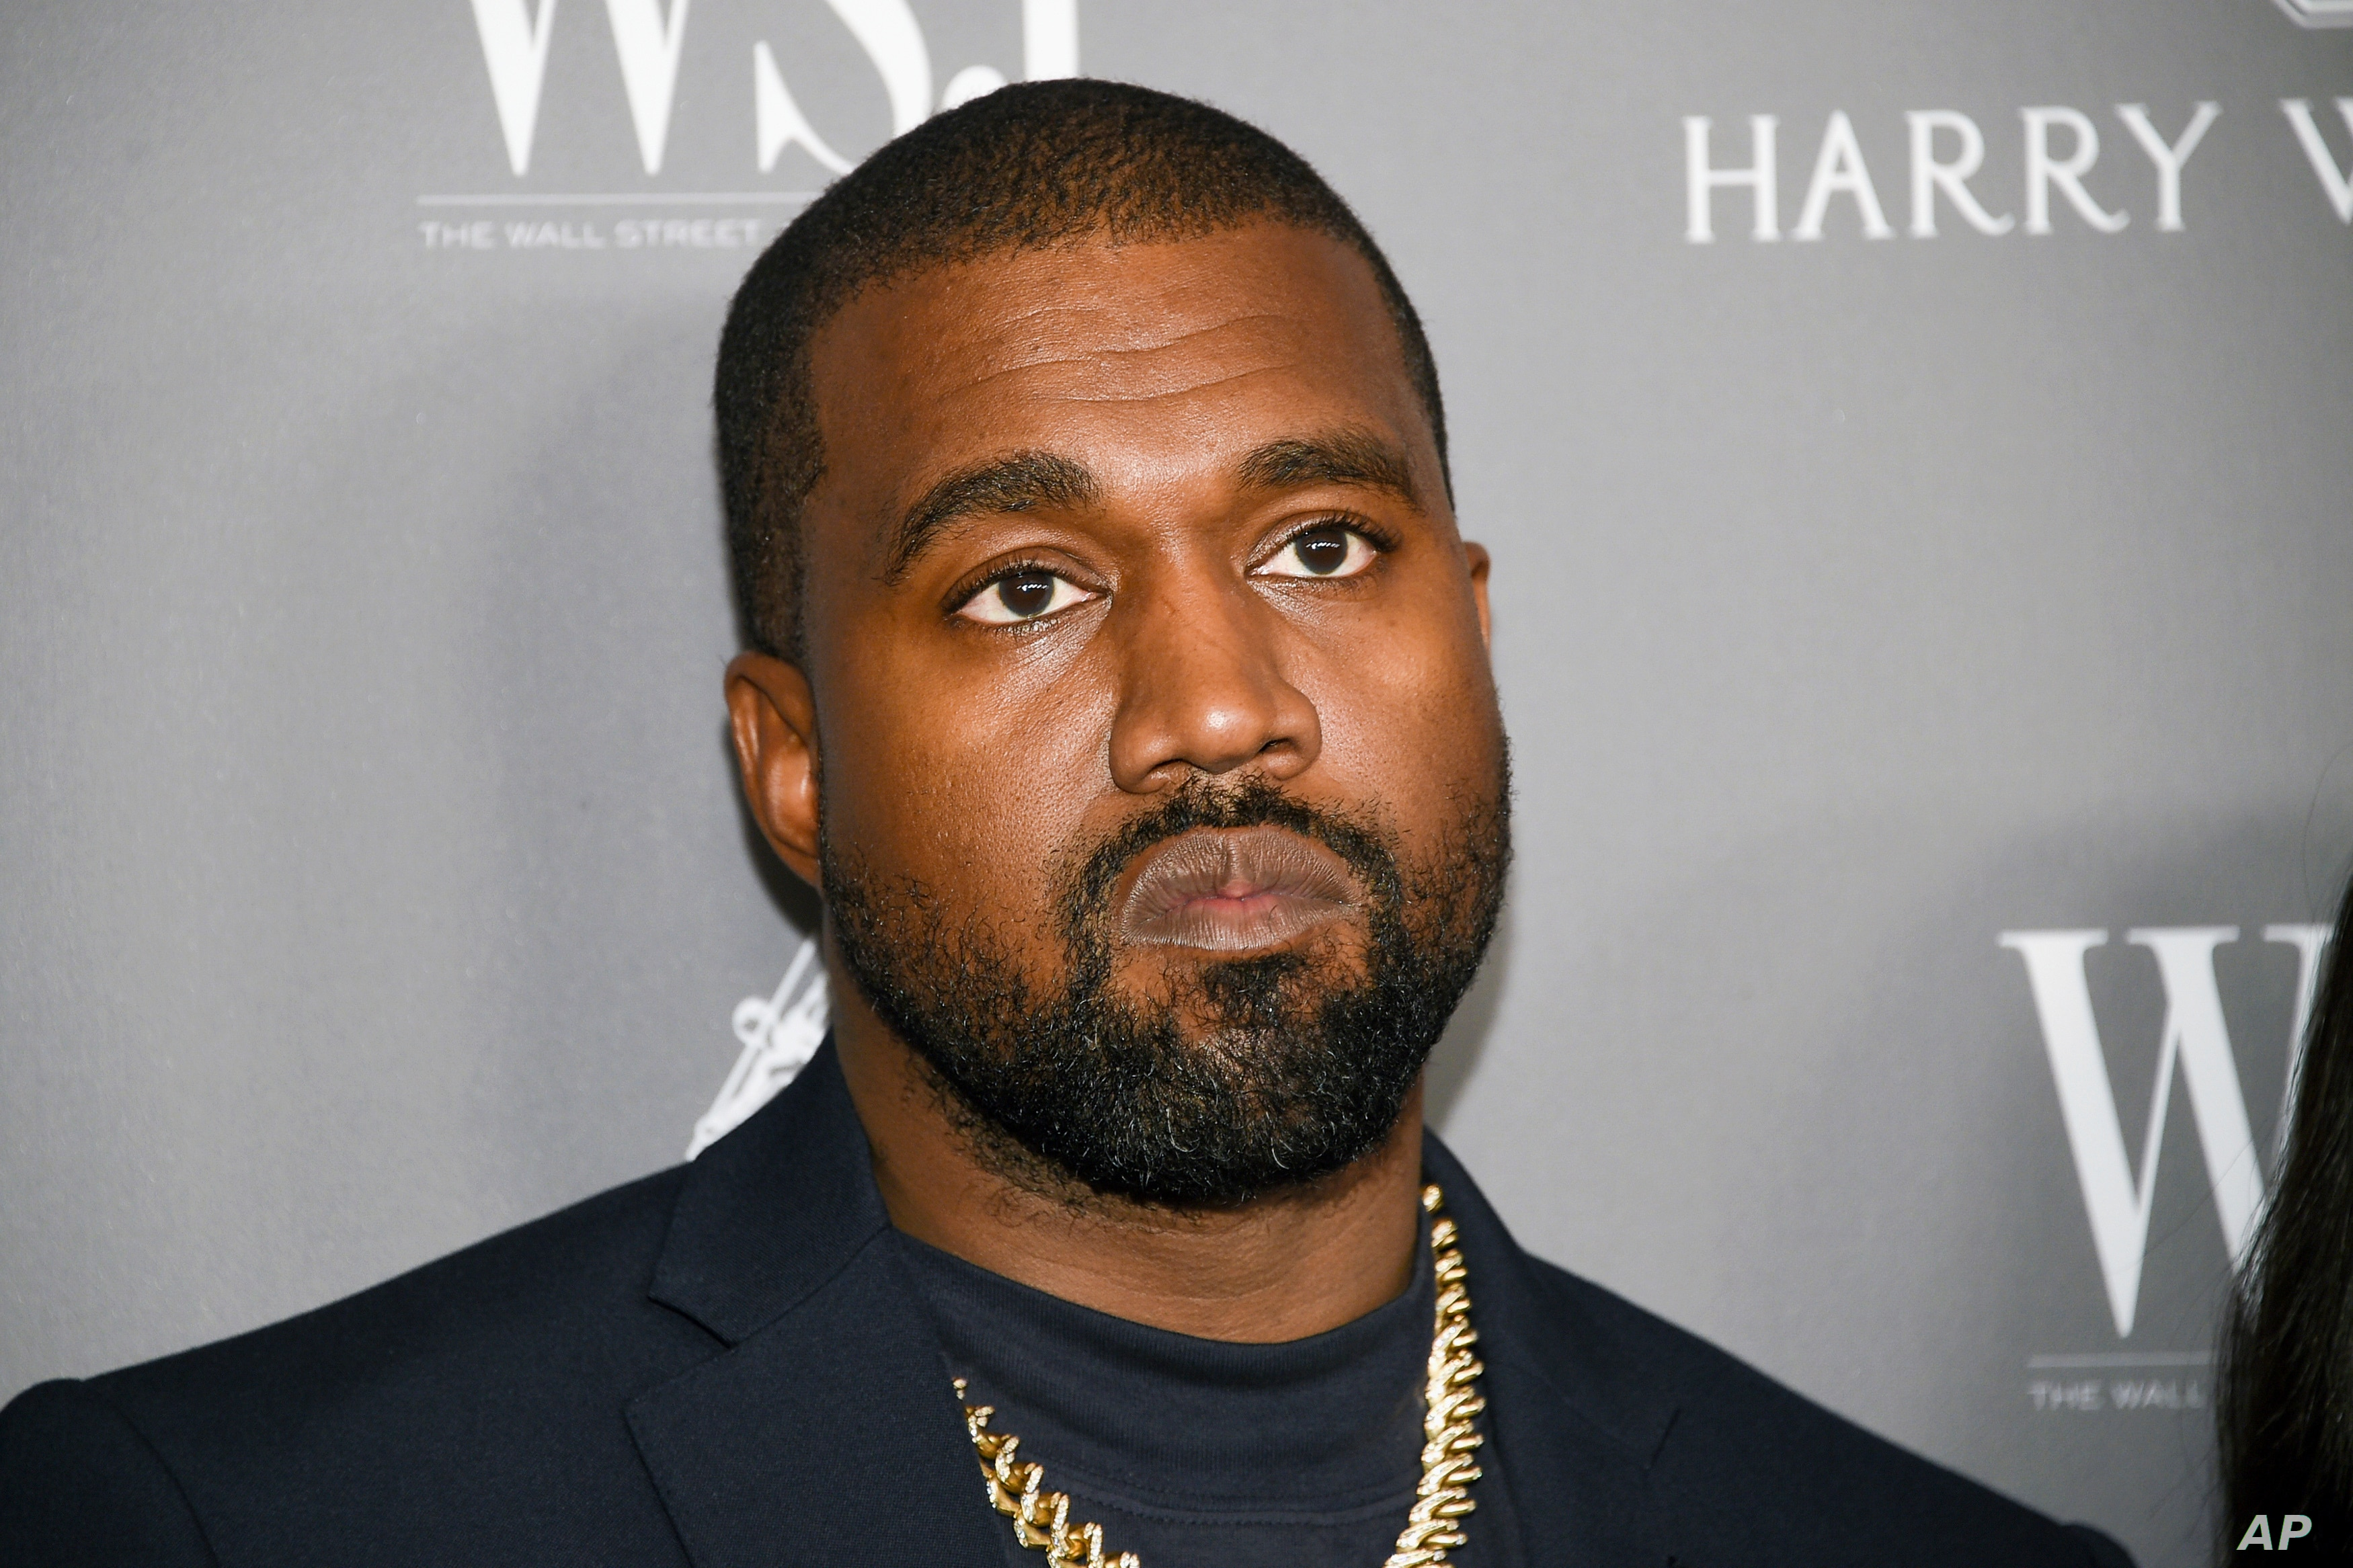 Surprise from Kanye West to Armenian fans